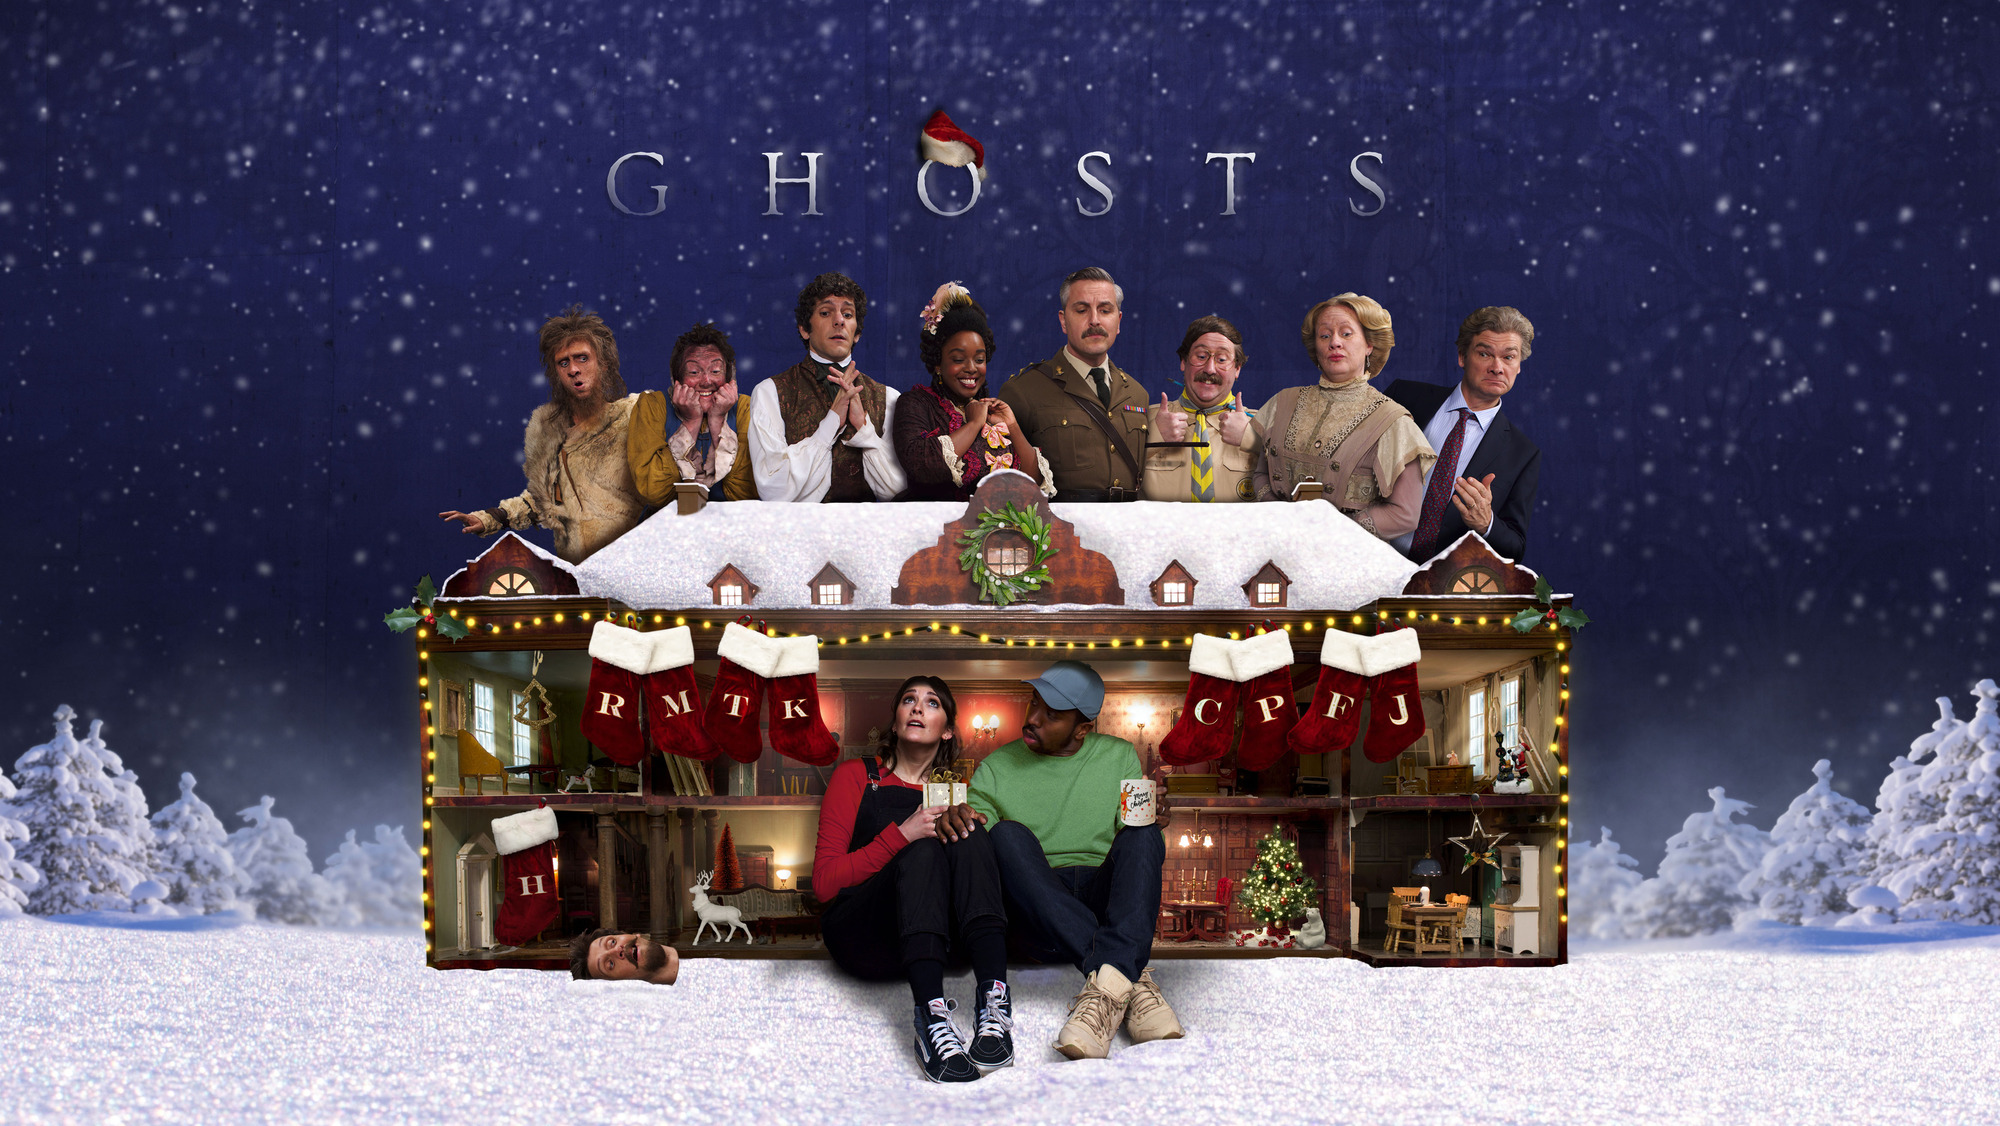 When Is The Ghosts Christmas Special On Tv Date And Cast For 2020 Festive Episode Tv Tellymix